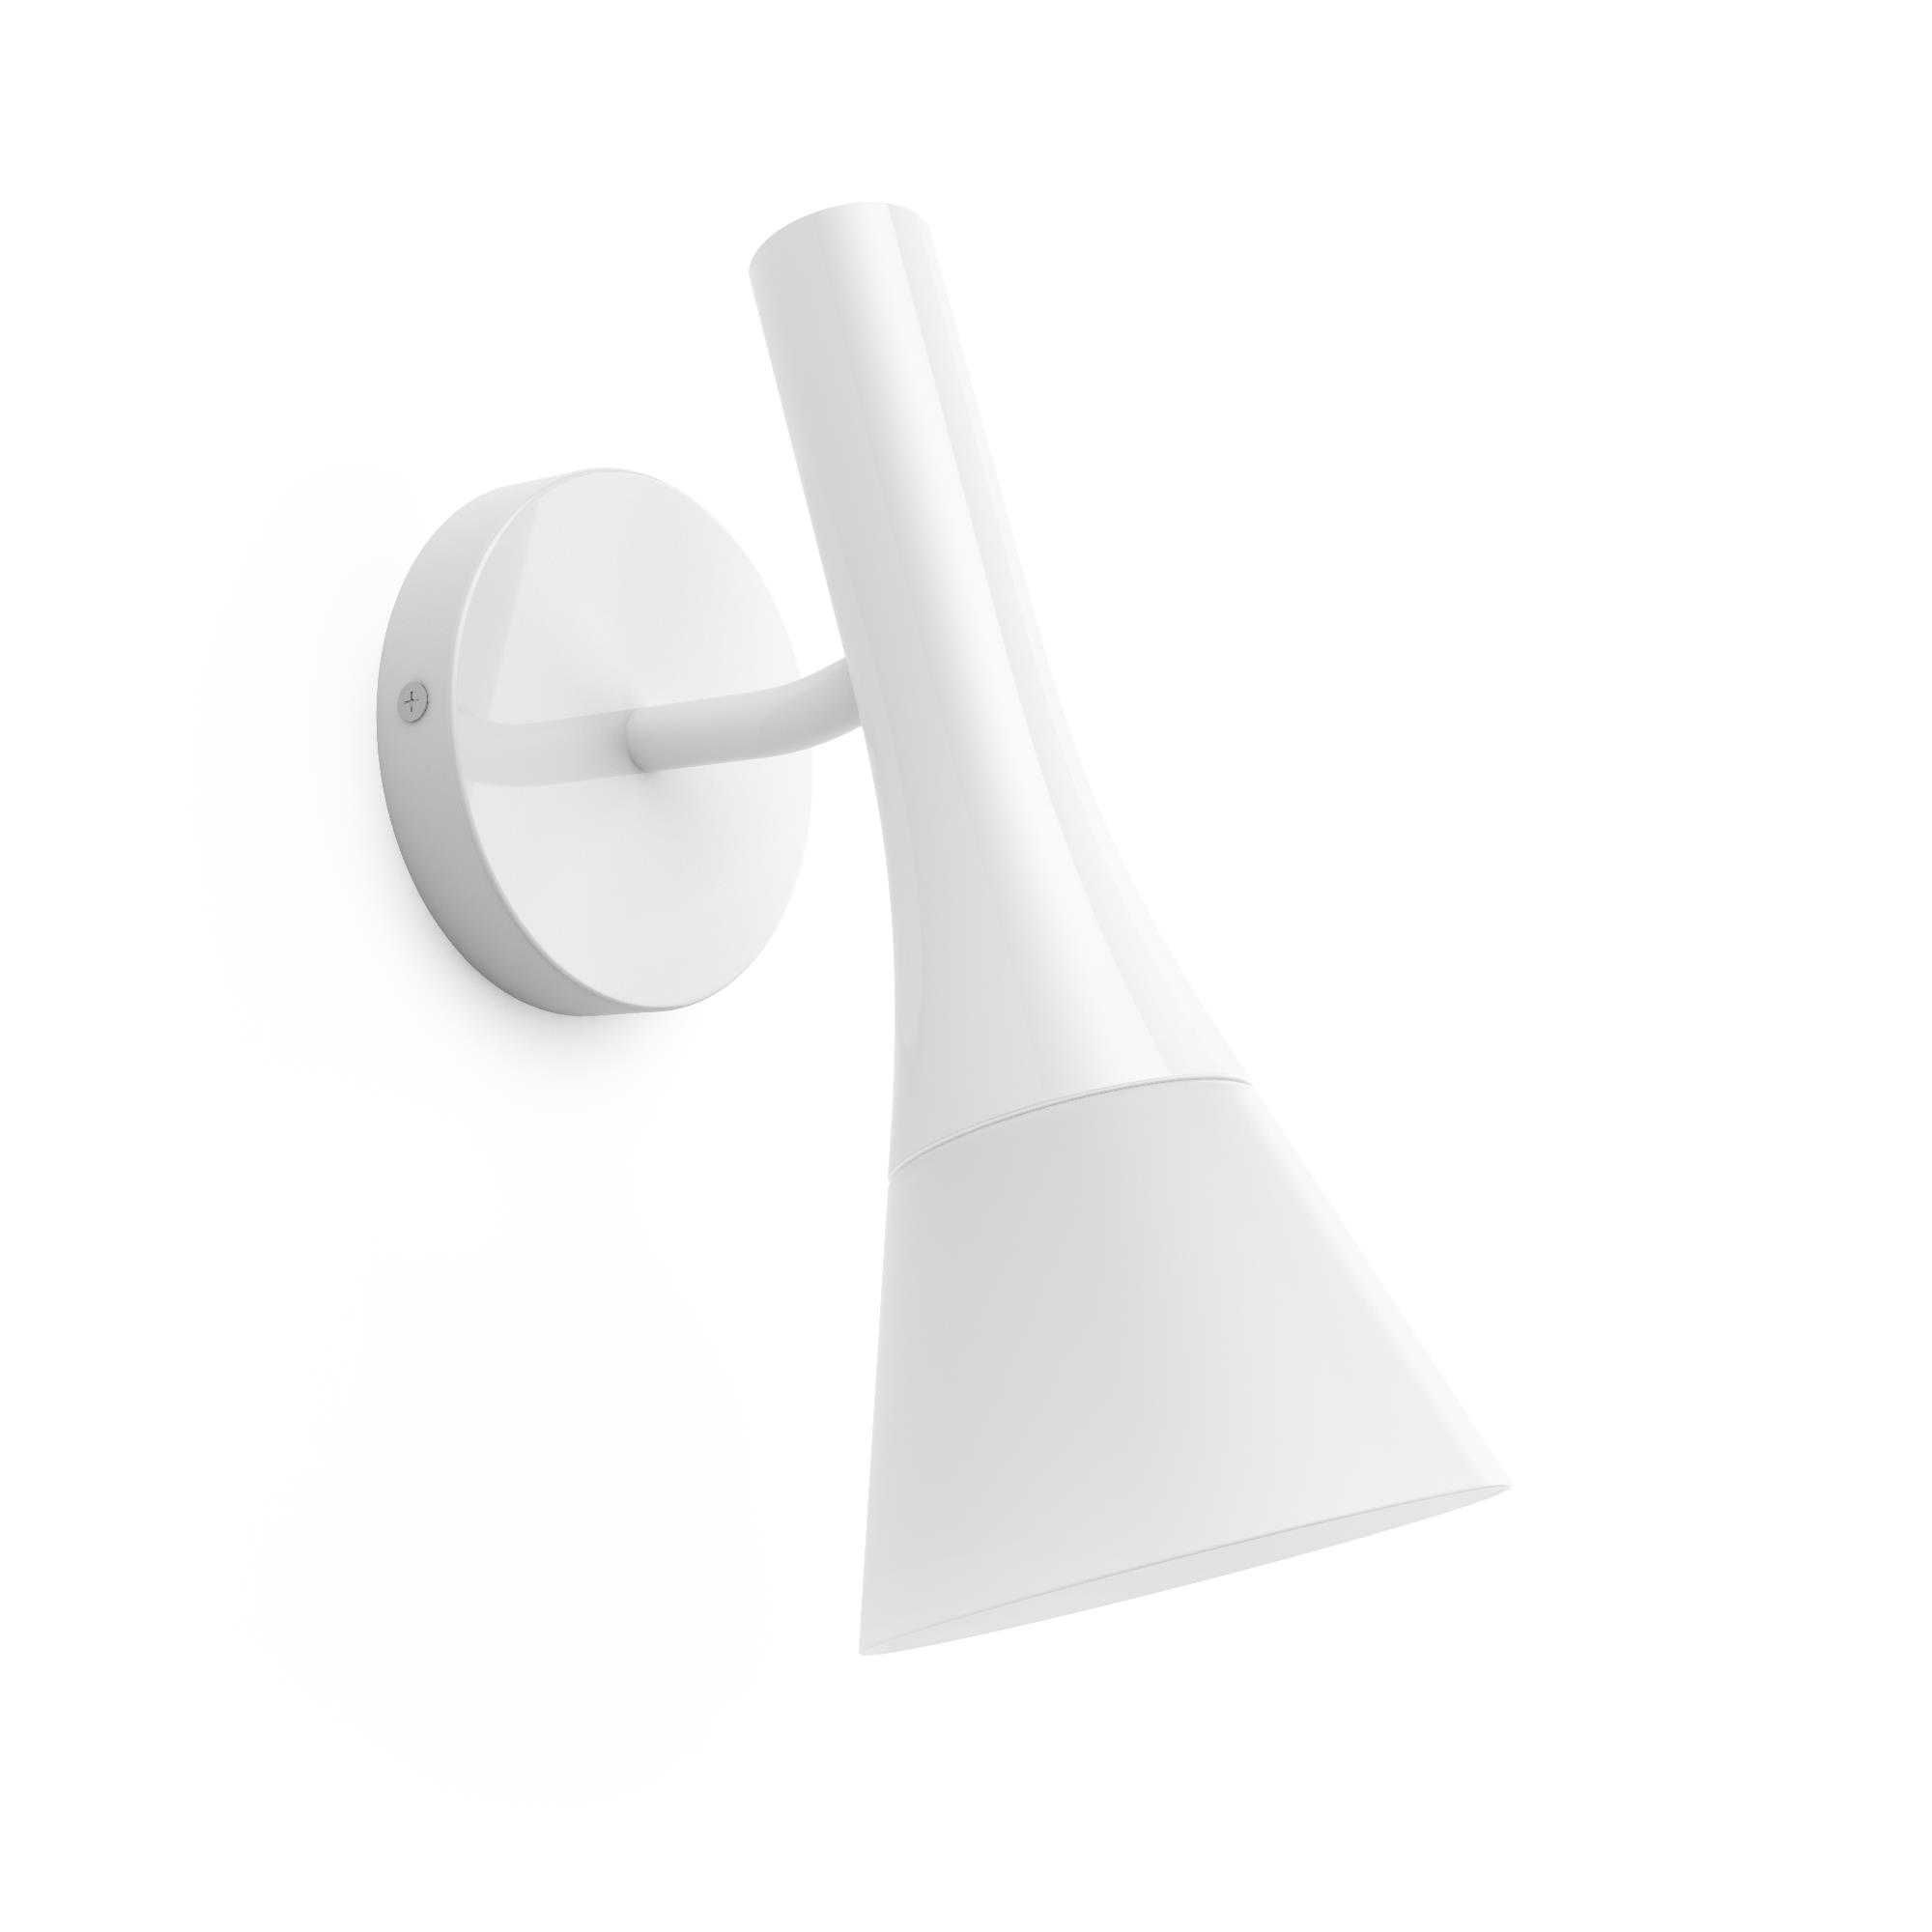 Philips Hue - Explore  Wall Lamp White (Dimmer Switch Included) - White Ambiance